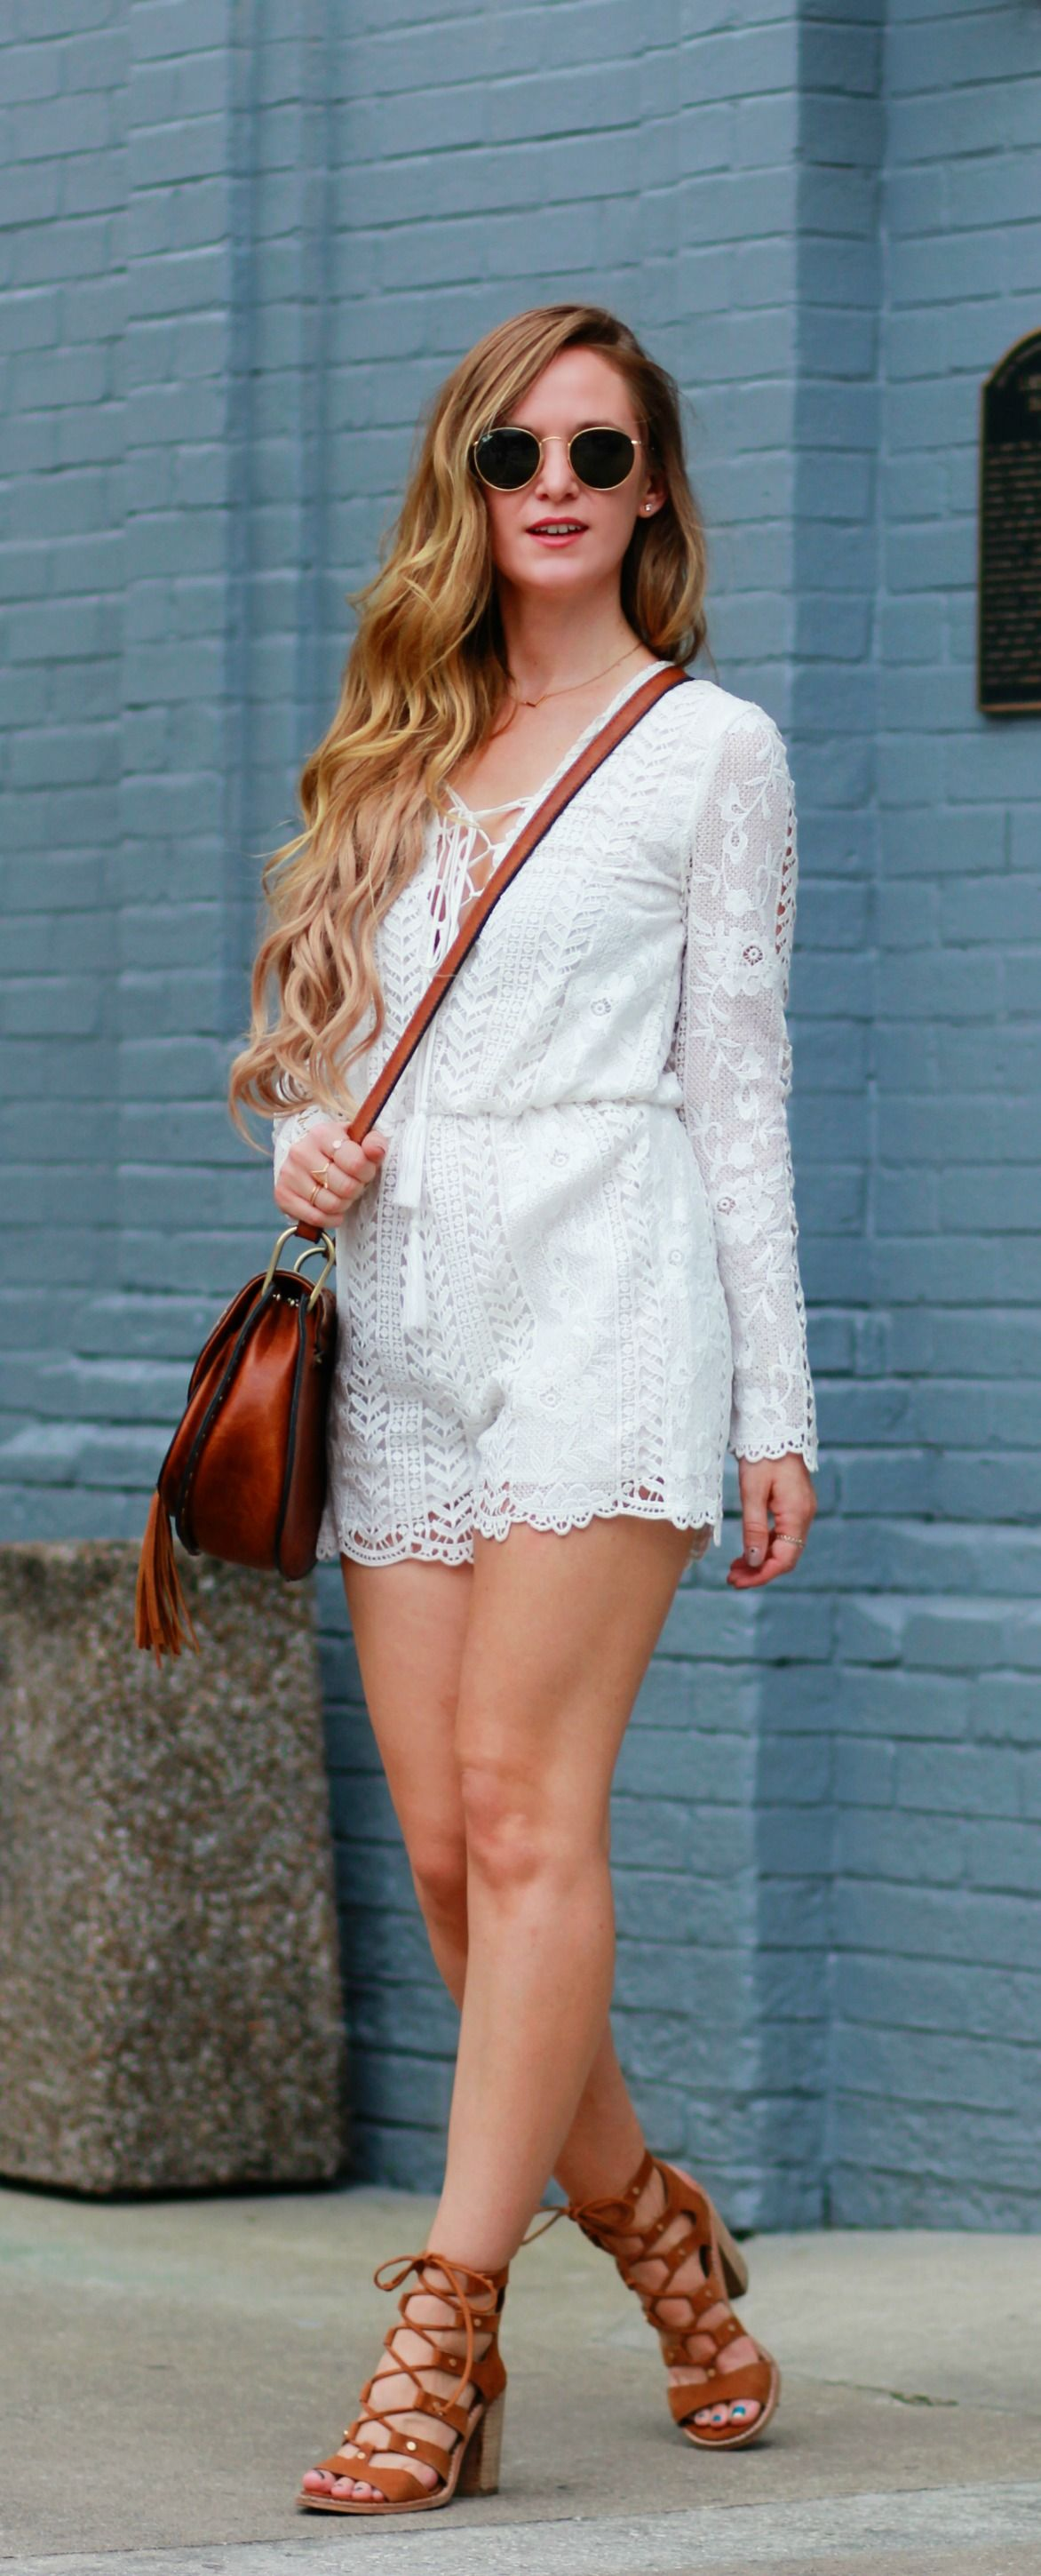 5214ea54510 Lace long sleeve romper styled with lace up block heels and tassel  crossbody bag